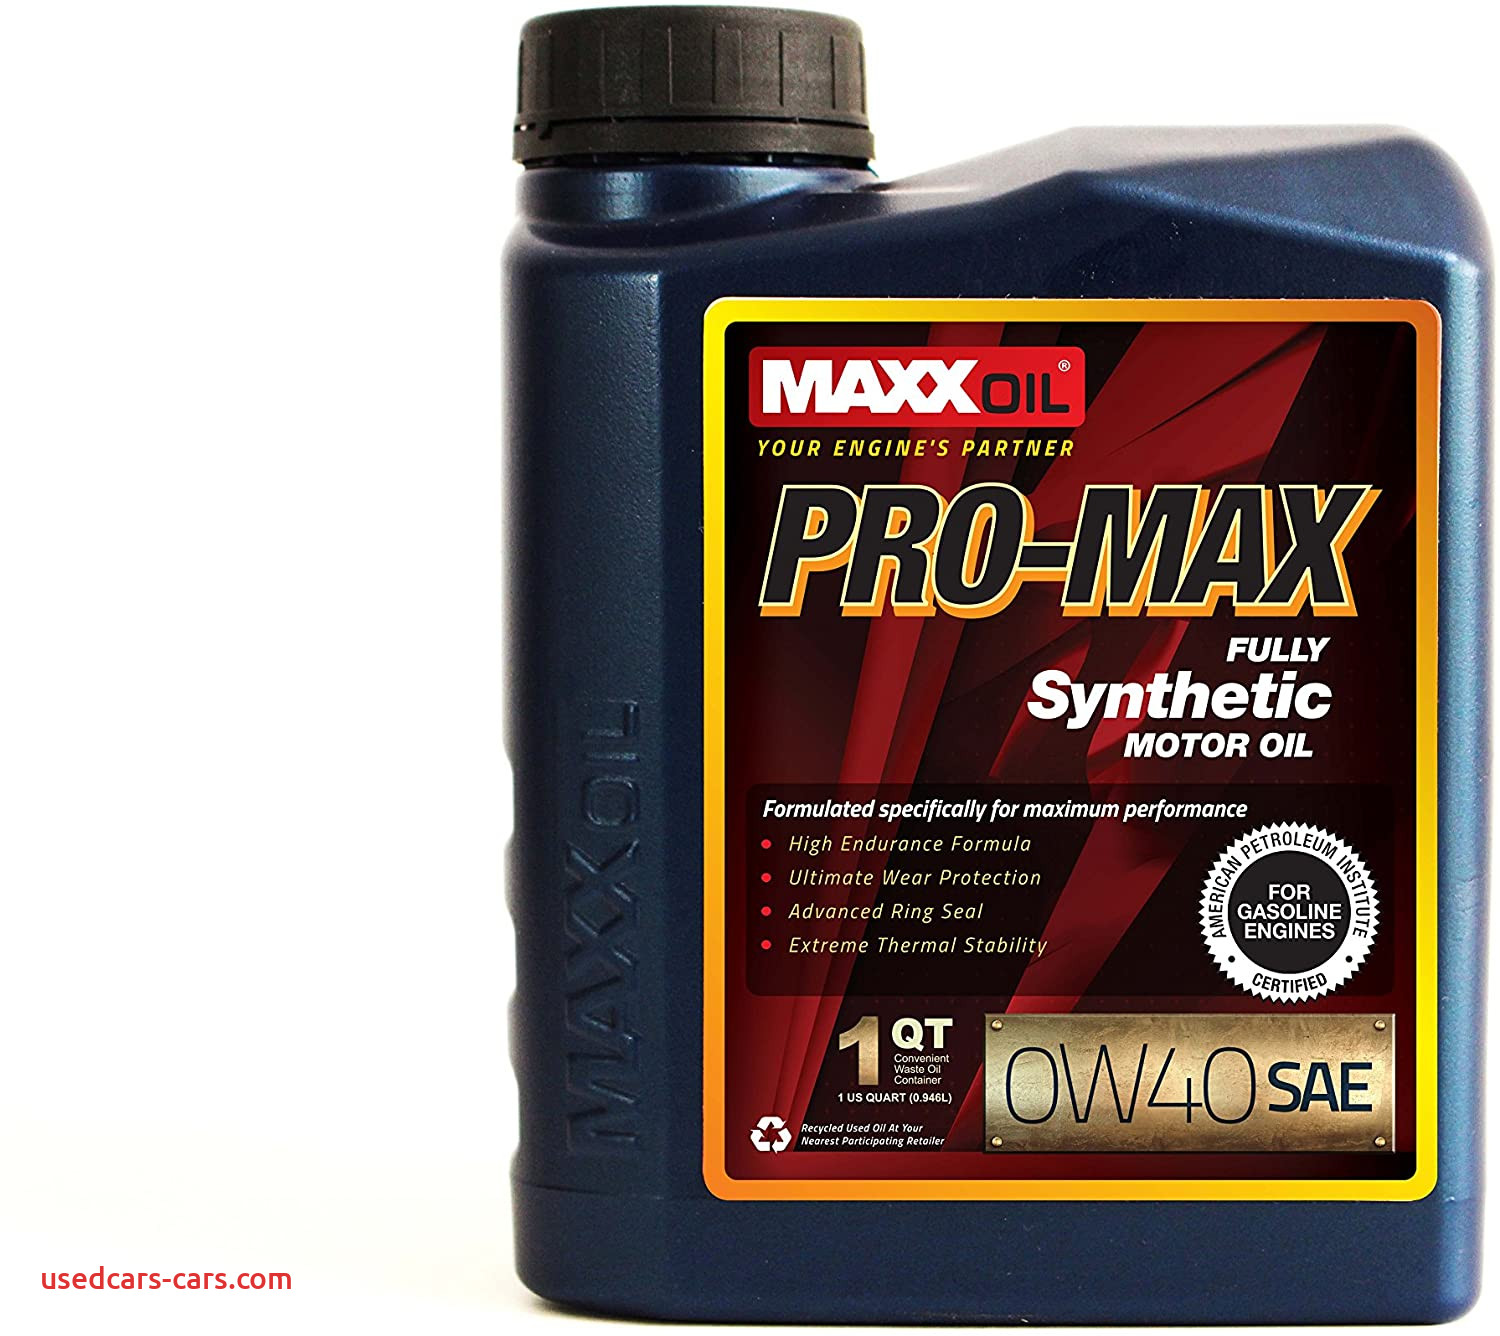 Synthetic Blend Vs Full Synthetic Oil Inspirational Maxx Oil Pro Max 0w40 Premium Synthetic Motor Oil 1 Quart